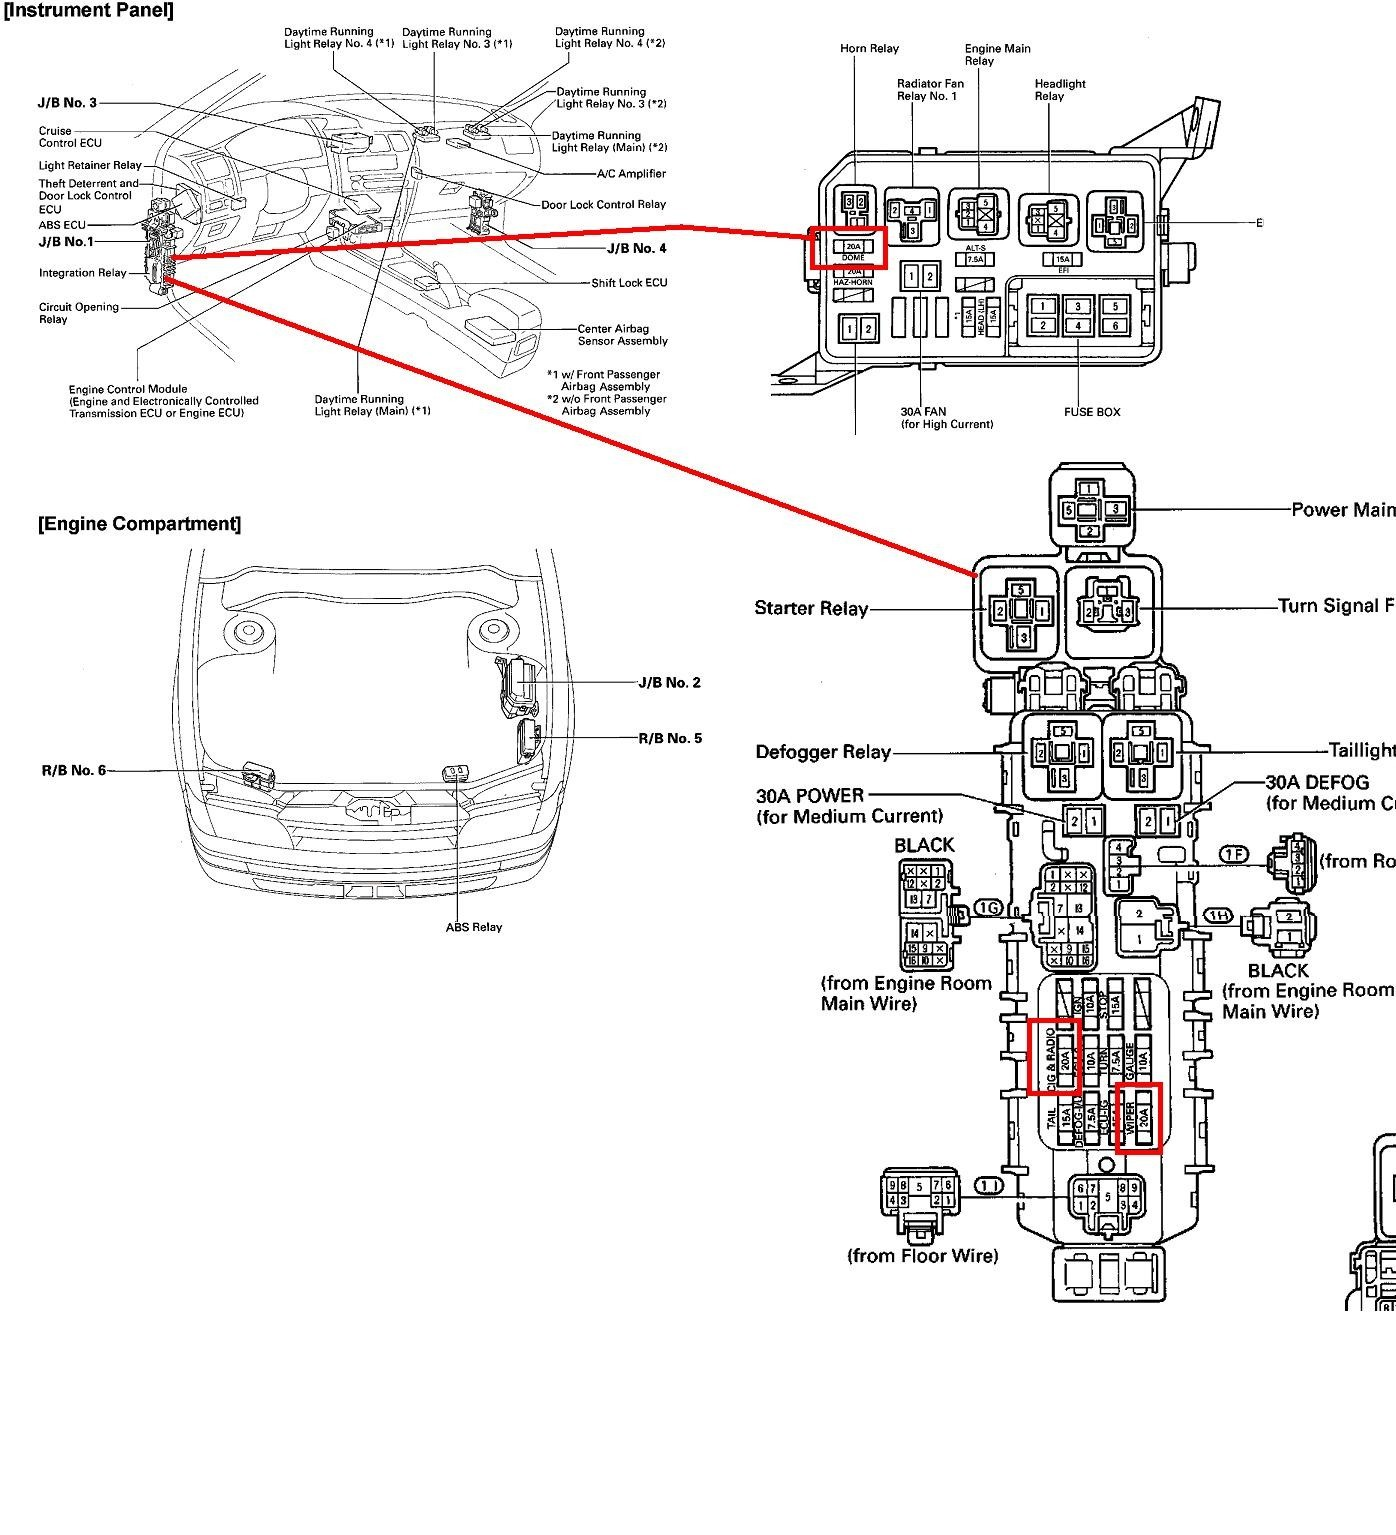 1994 toyota corolla engine diagram 1993 toyota corolla wiring rh detoxicrecenze com 94 toyota corolla engine diagram 1994 Toyota Pickup Engine Diagram